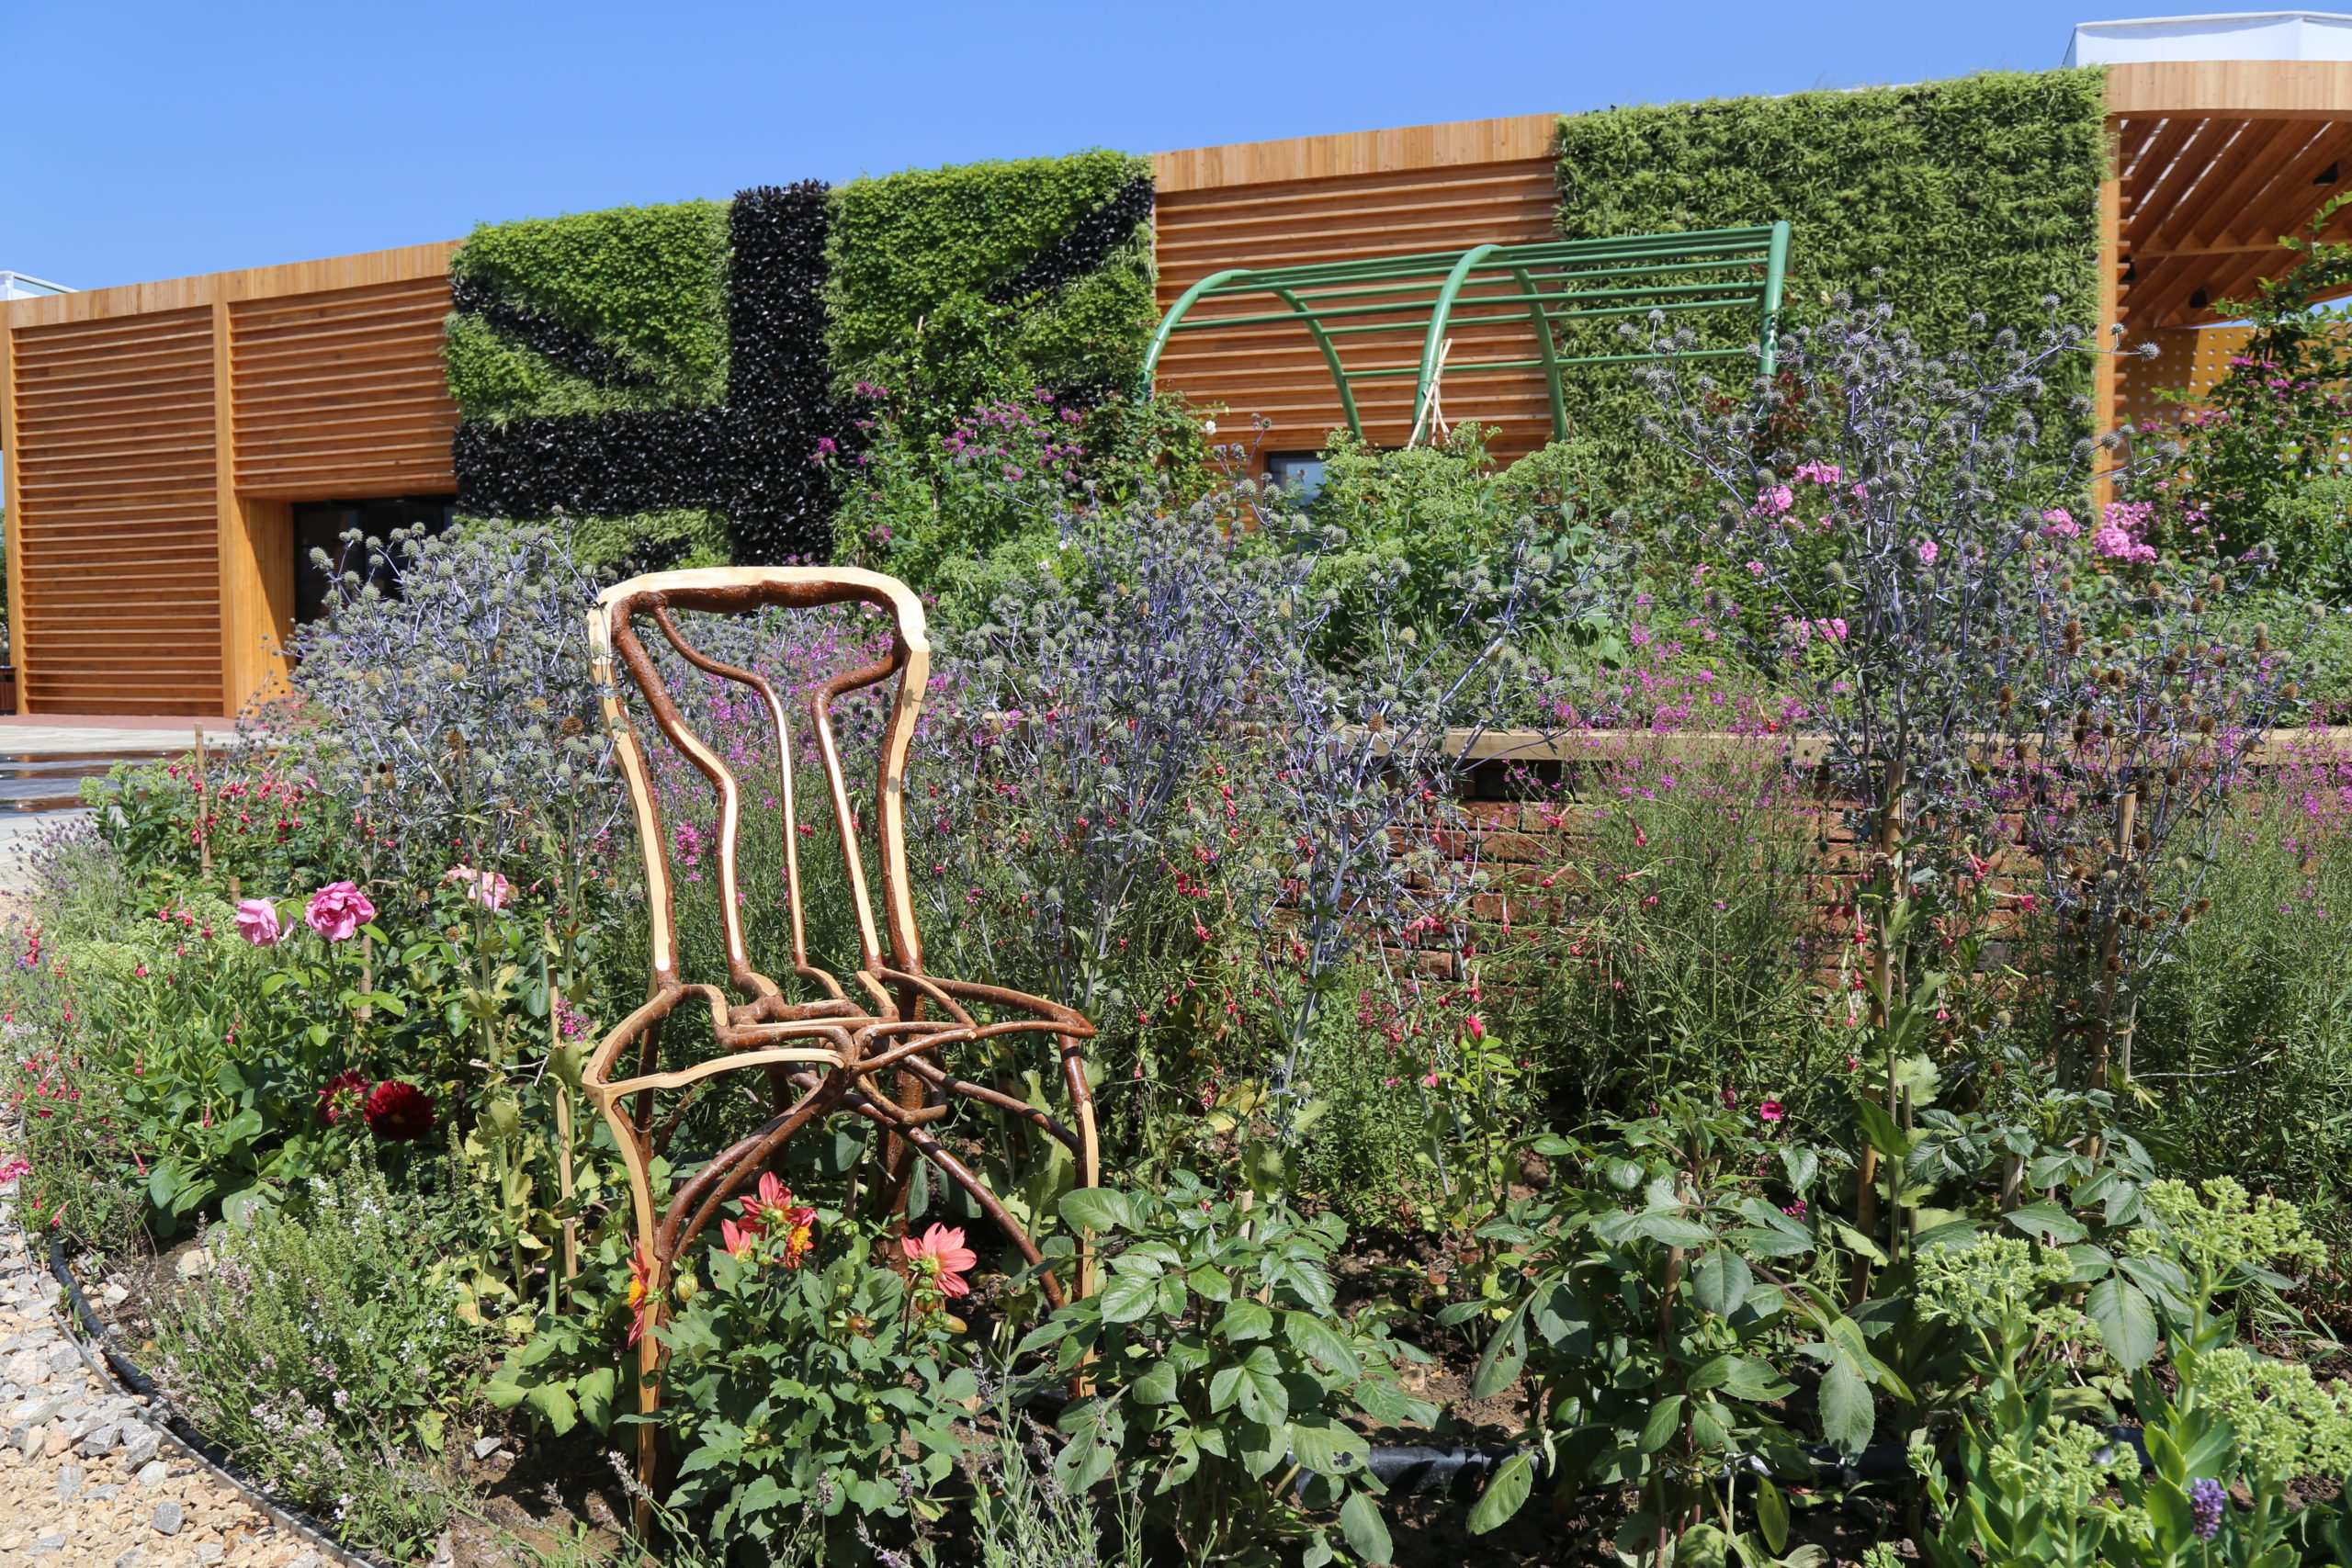 The Edwardes Chair at the Beijing Horticultural Expo UK Pavilion